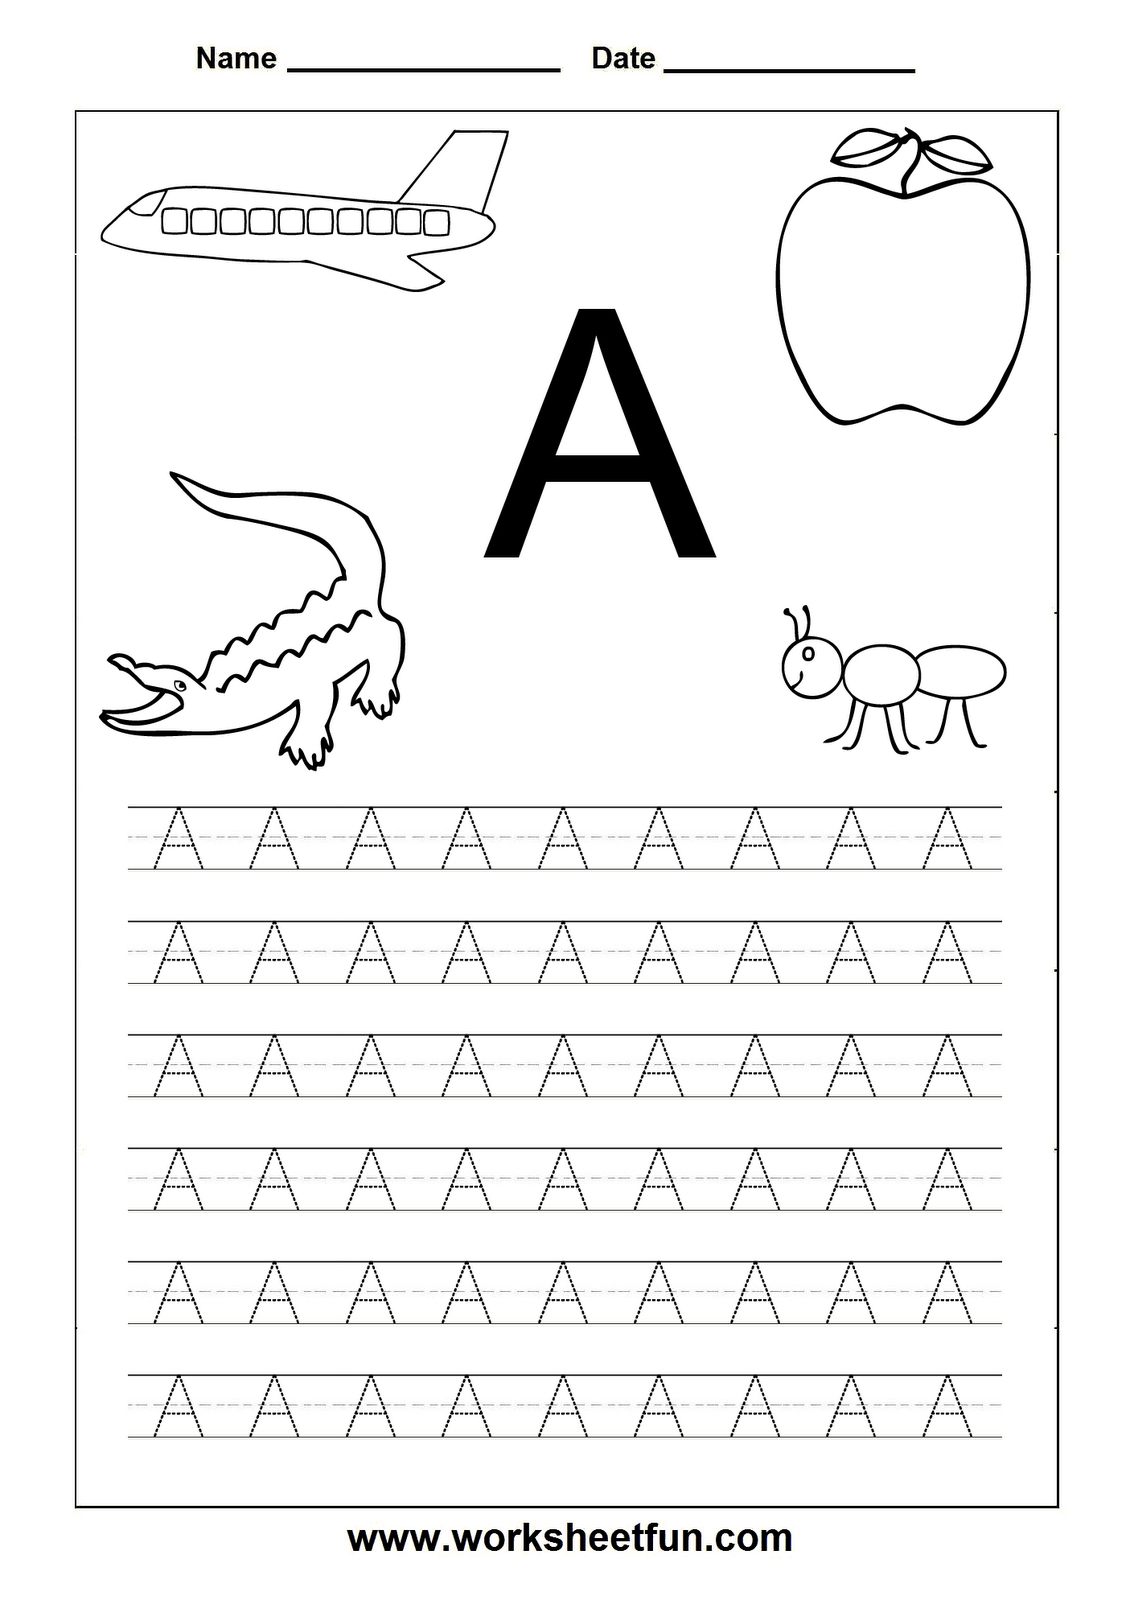 Letter Worksheets For Kindergarten Printable | Letters | Pinterest - Free Printable Letter Worksheets